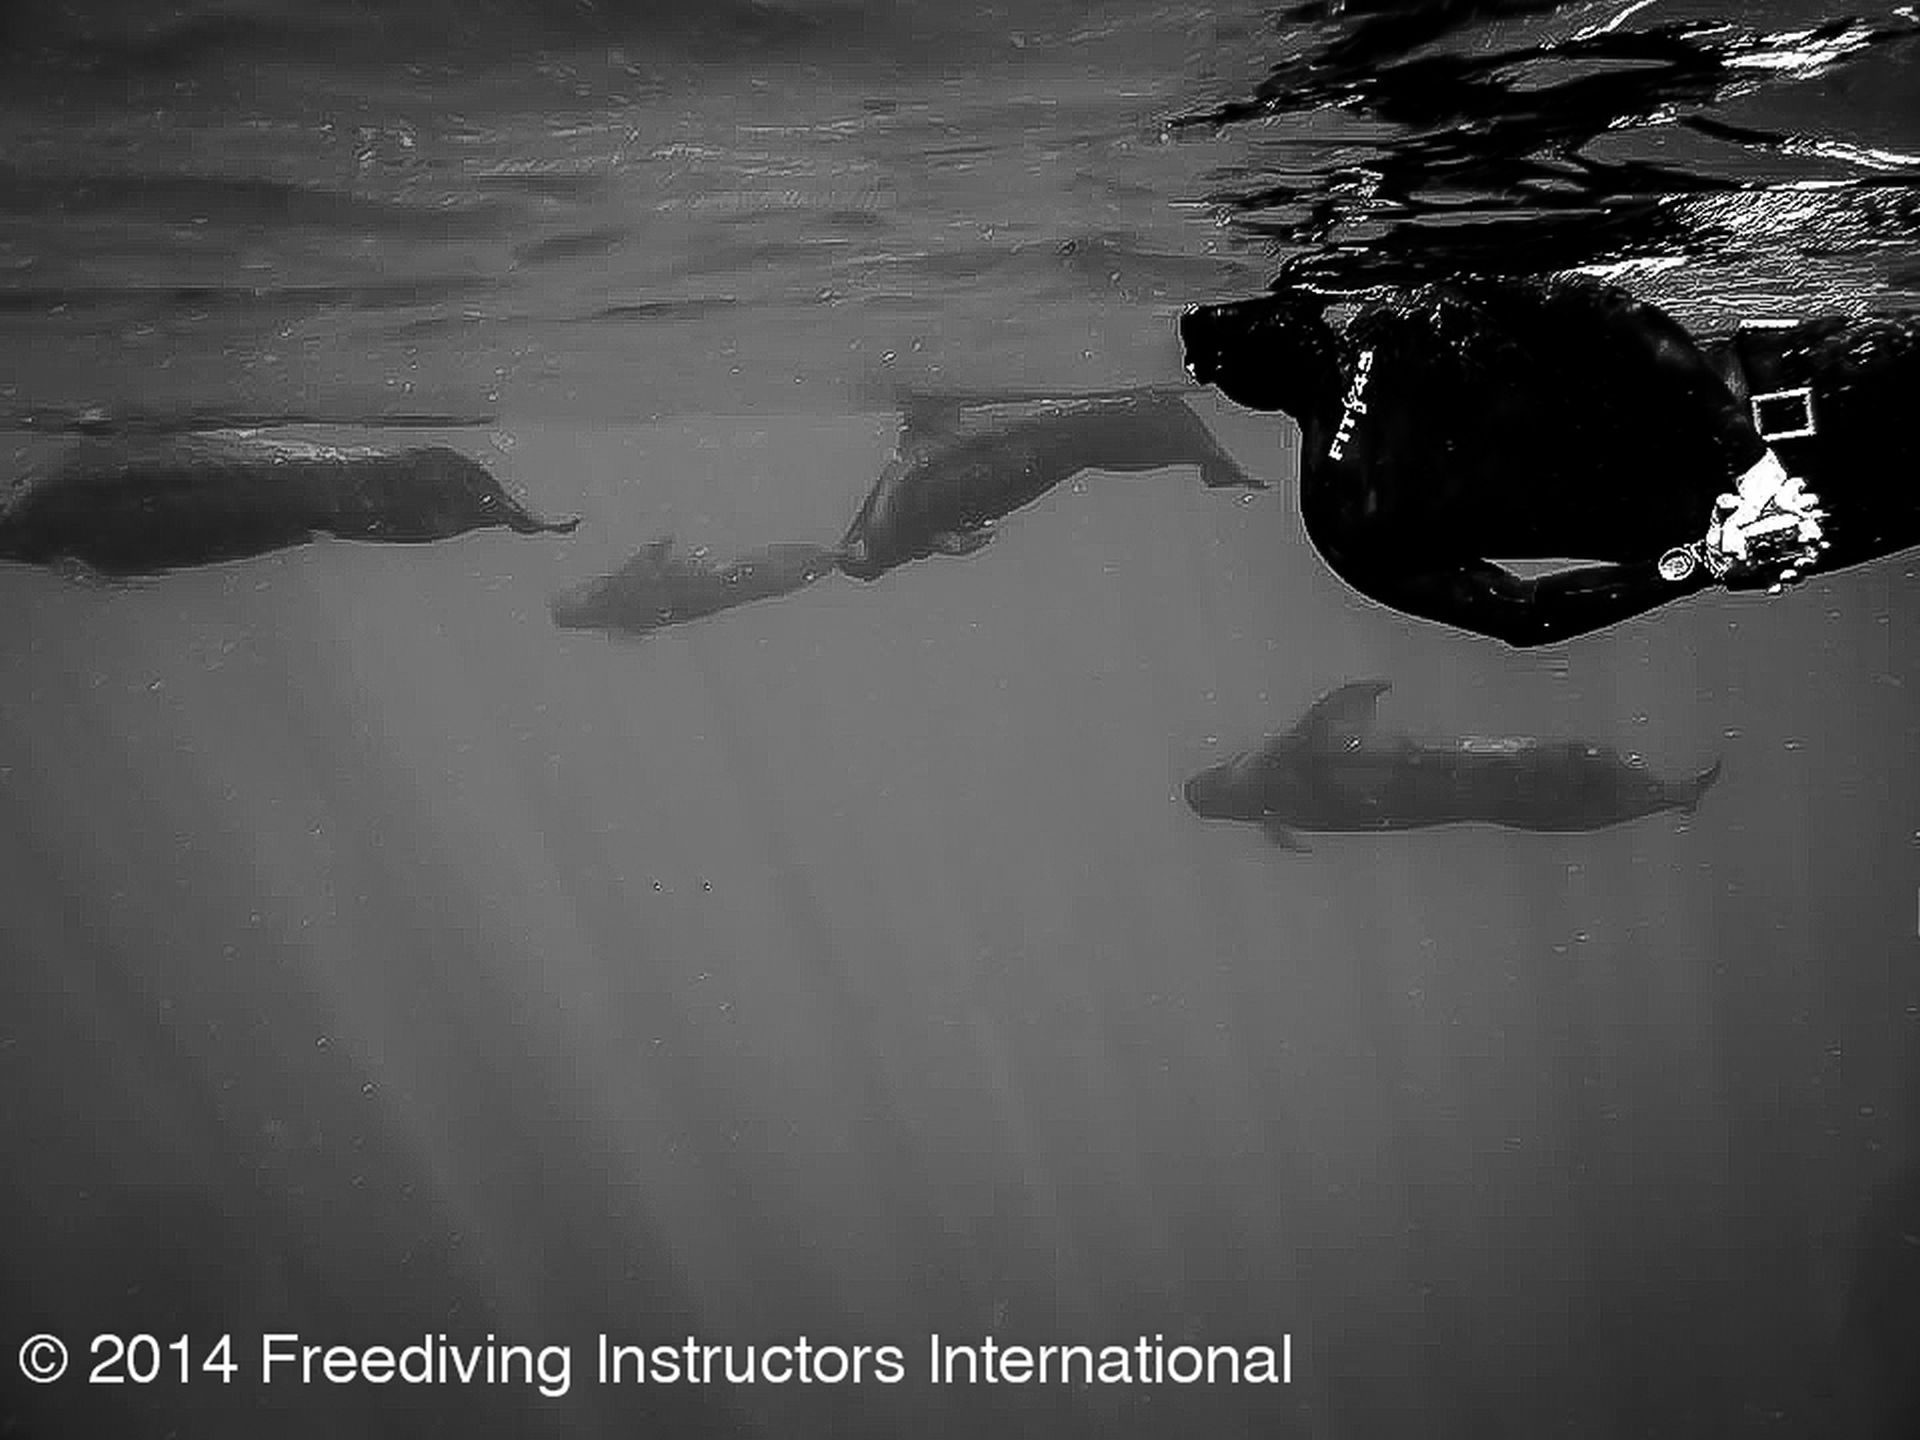 FII Freediver and Shortfinned Pilot Whales during the FII Kona Freediving Camp